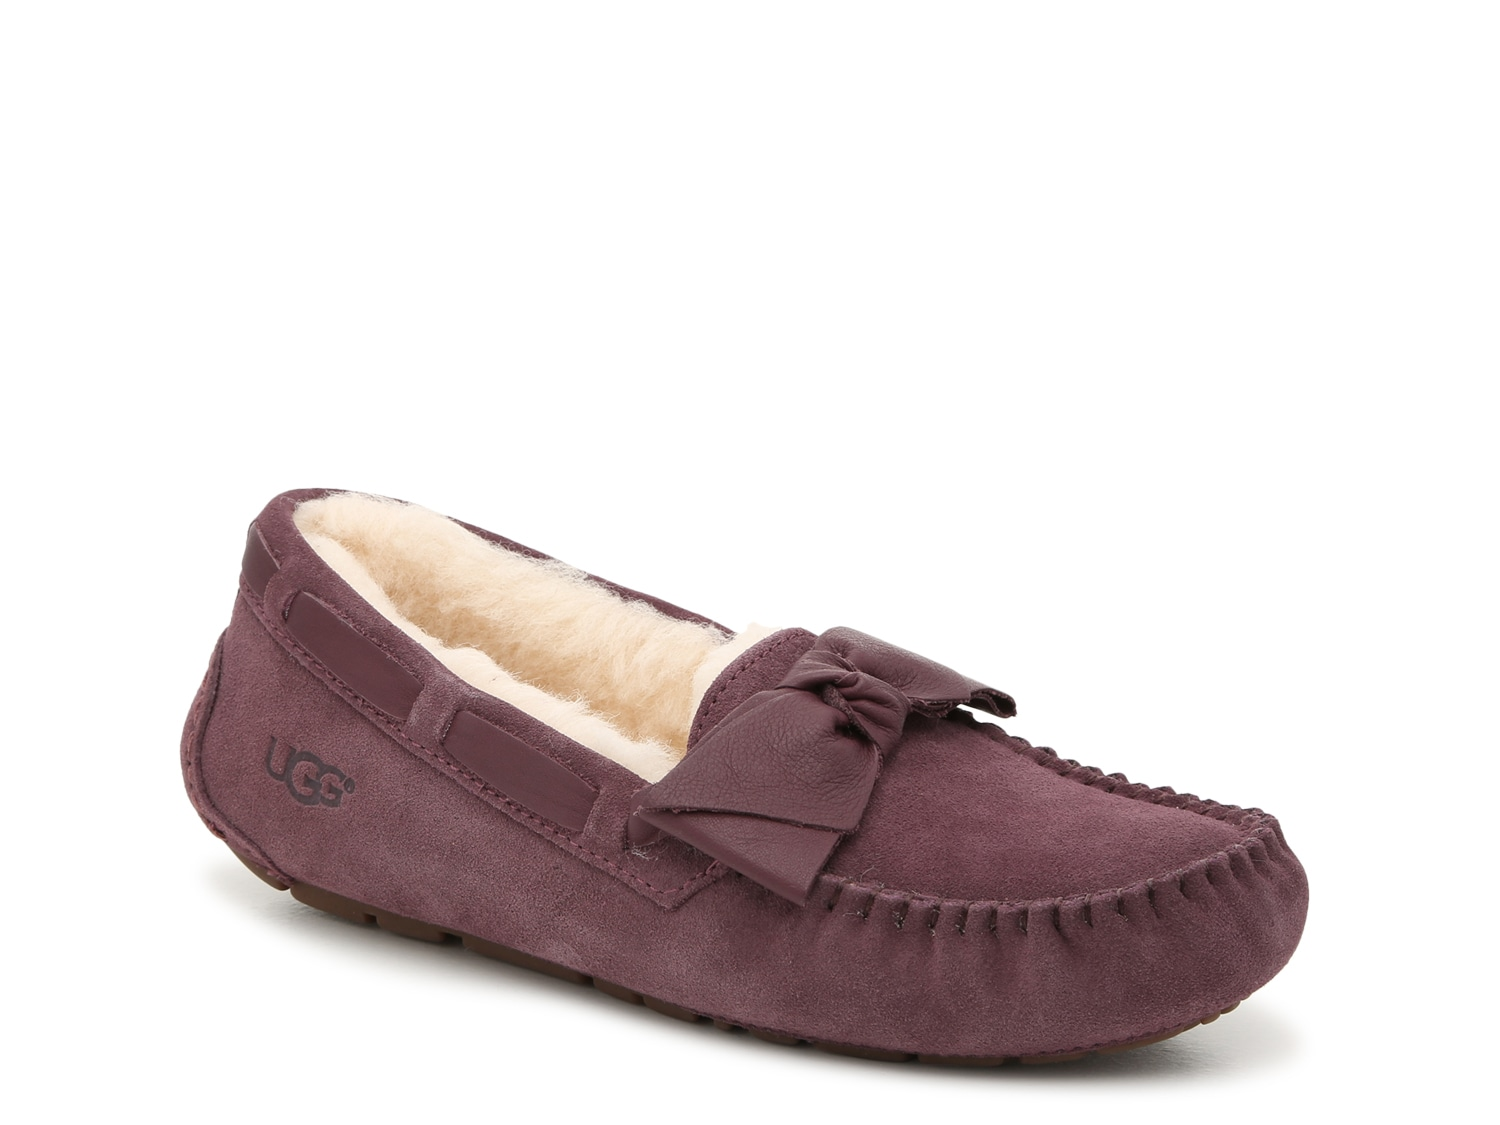 womens ugg slippers clearance